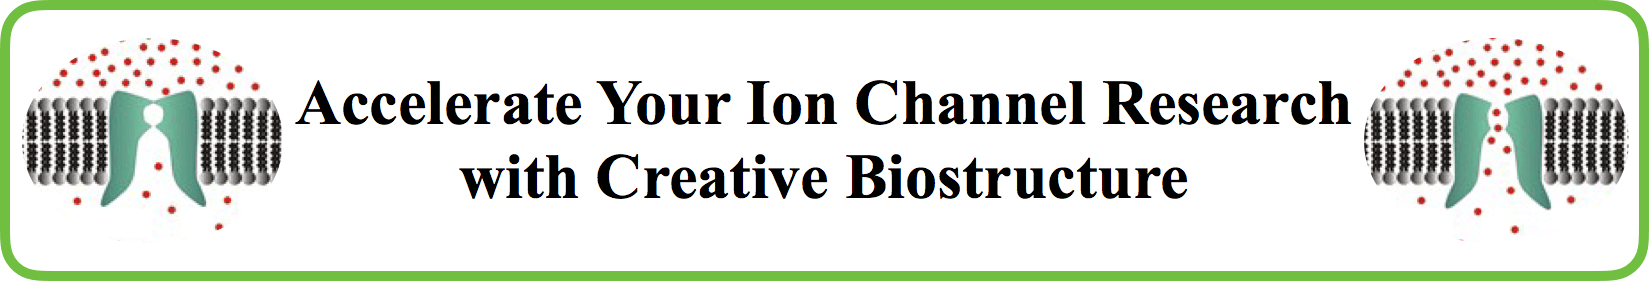 Discovery Program for Ion Channel Targets